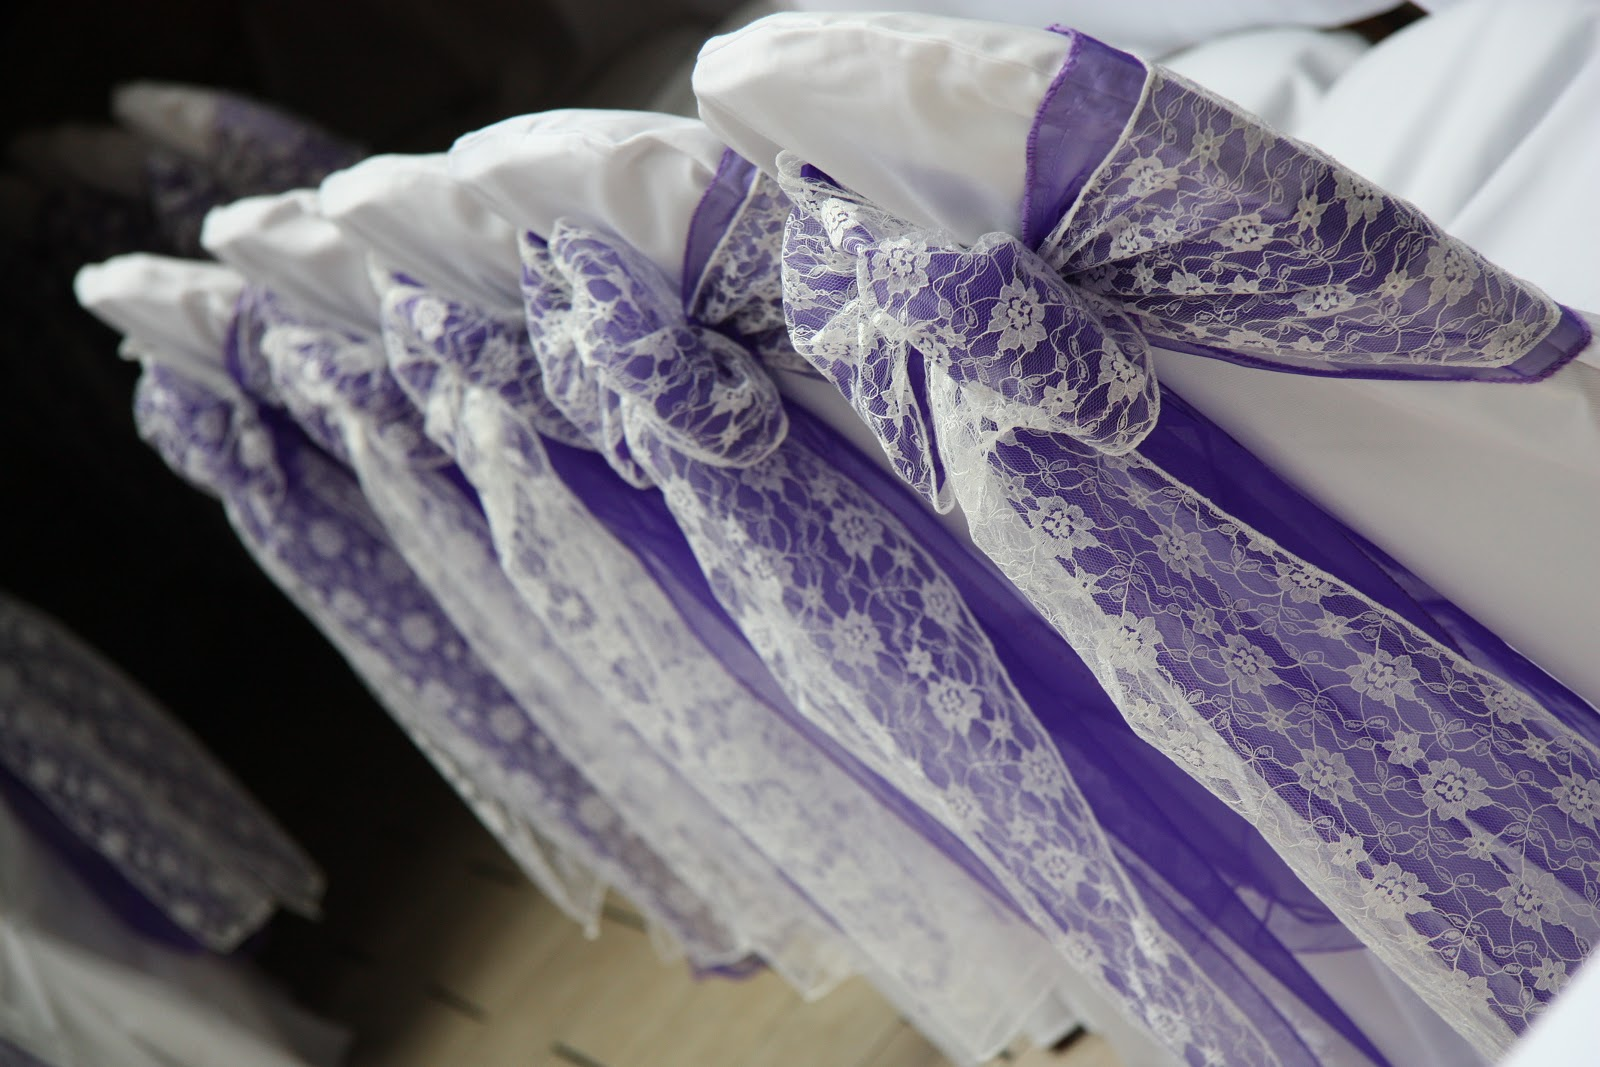 posh chair covers and bows cadbury purple lace sashes a winning